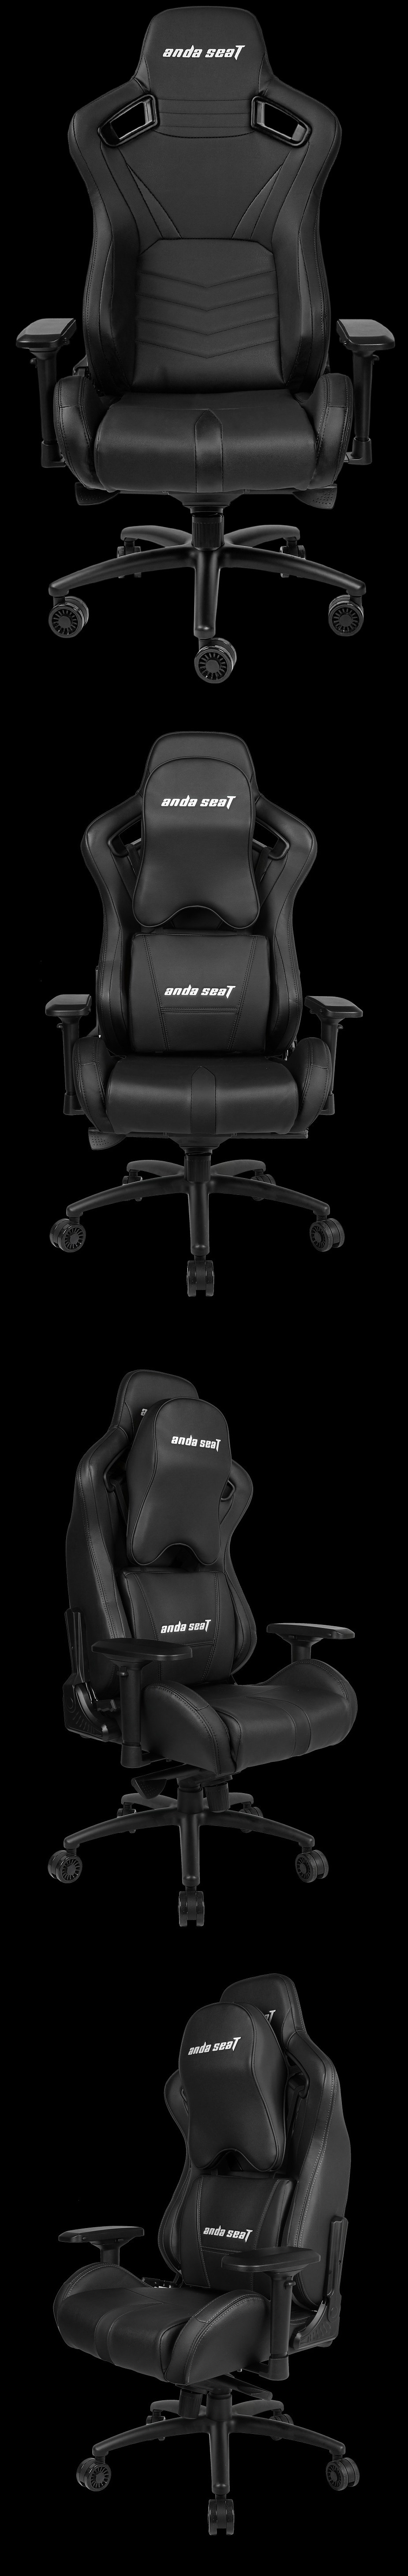 Anda Seat AD12-XL-03 v2 Gaming Chair - Black - Desktop Overview 2